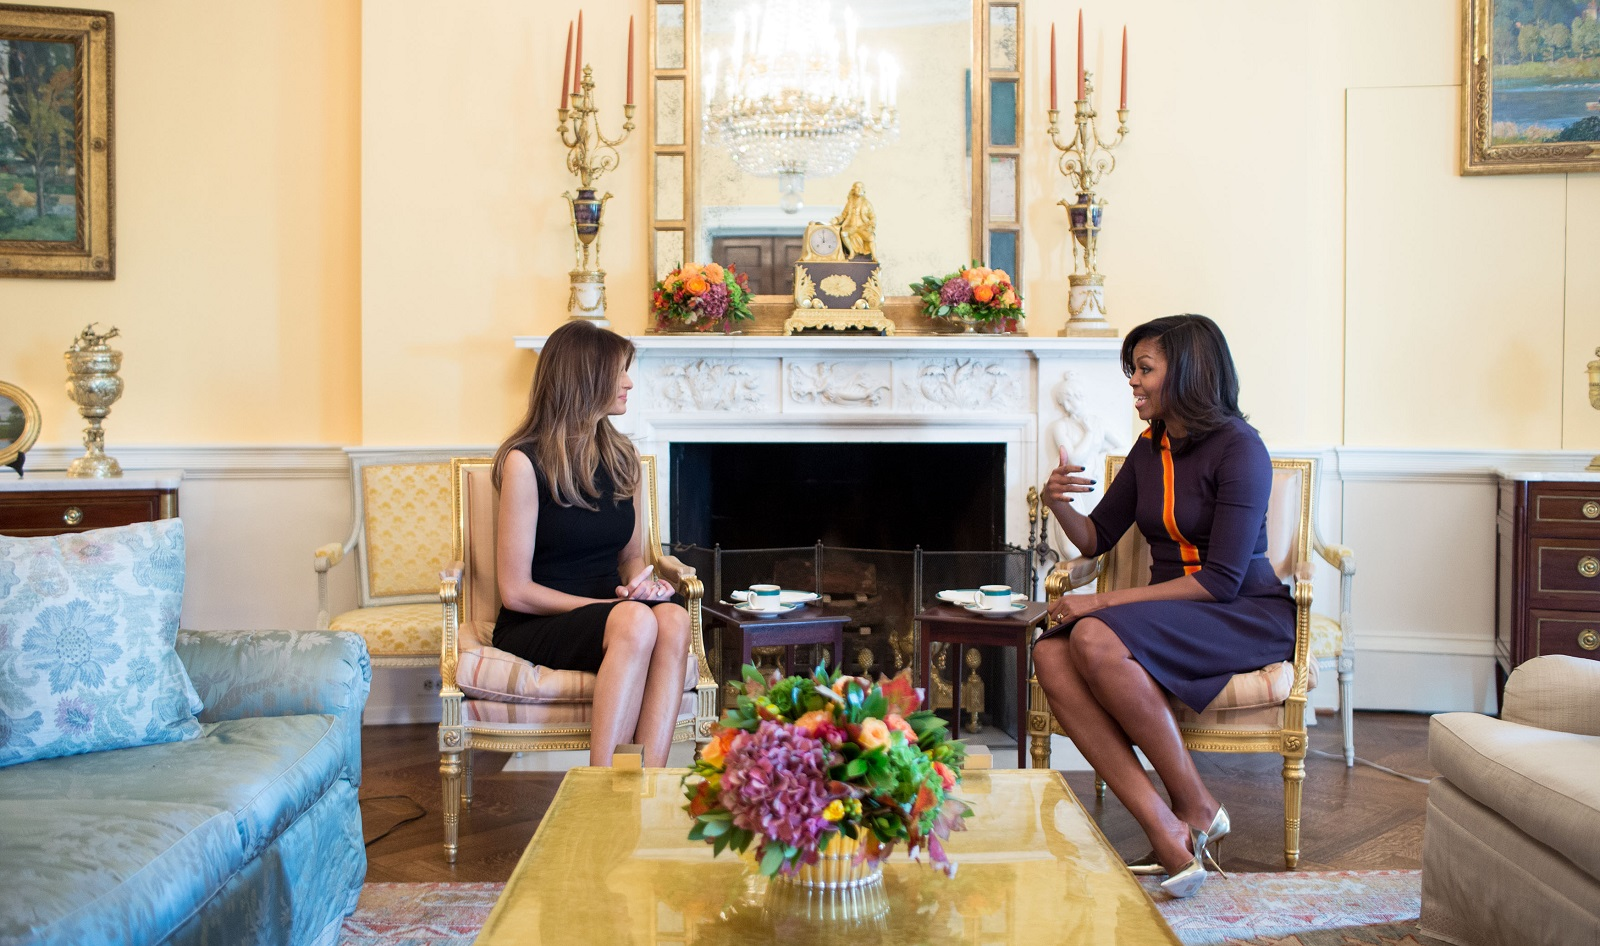 First lady Michelle Obama meets with Melania Trump for tea in the Yellow Oval Room at the White House on Nov. 10. White House (Photo by Chuck Kennedy)